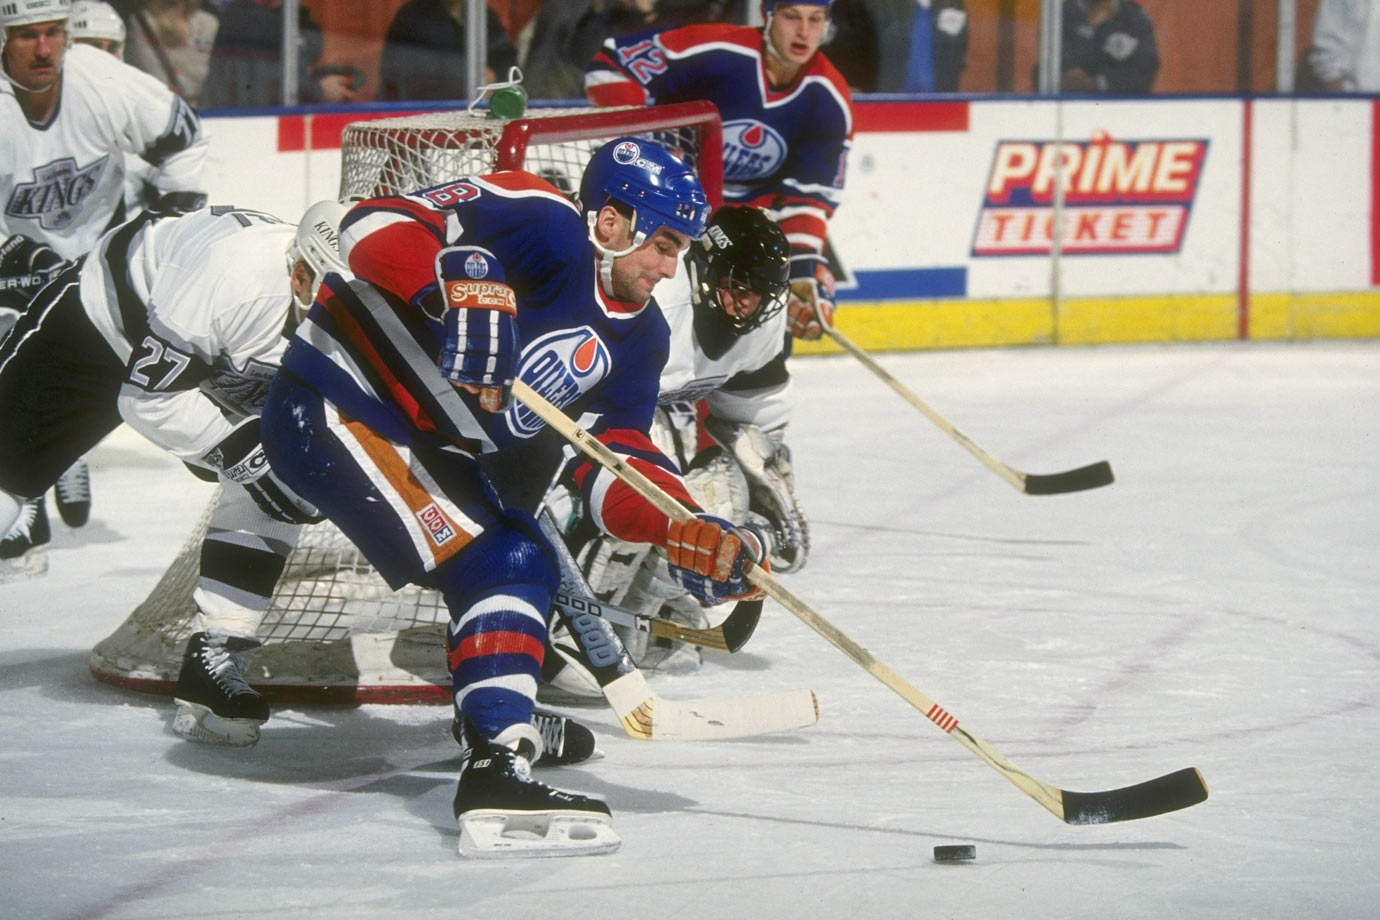 <p>A disappointment in Detroit, Murphy skated on a Stanley Cup-winner in Edmonton in 1989-90, and had his peak season with the Oilers (35 goals in 1991-92). In all, though, his was a journeyman's career: 528 total points for seven teams over 14 seasons. — Notable picks: No. 2: Jimmy Carson, C, Los Angeles Kings | No. 9: Brian Leetch, D, New York Rangers | No. 22: Adam Graves, LW, Detroit Red Wings</p>